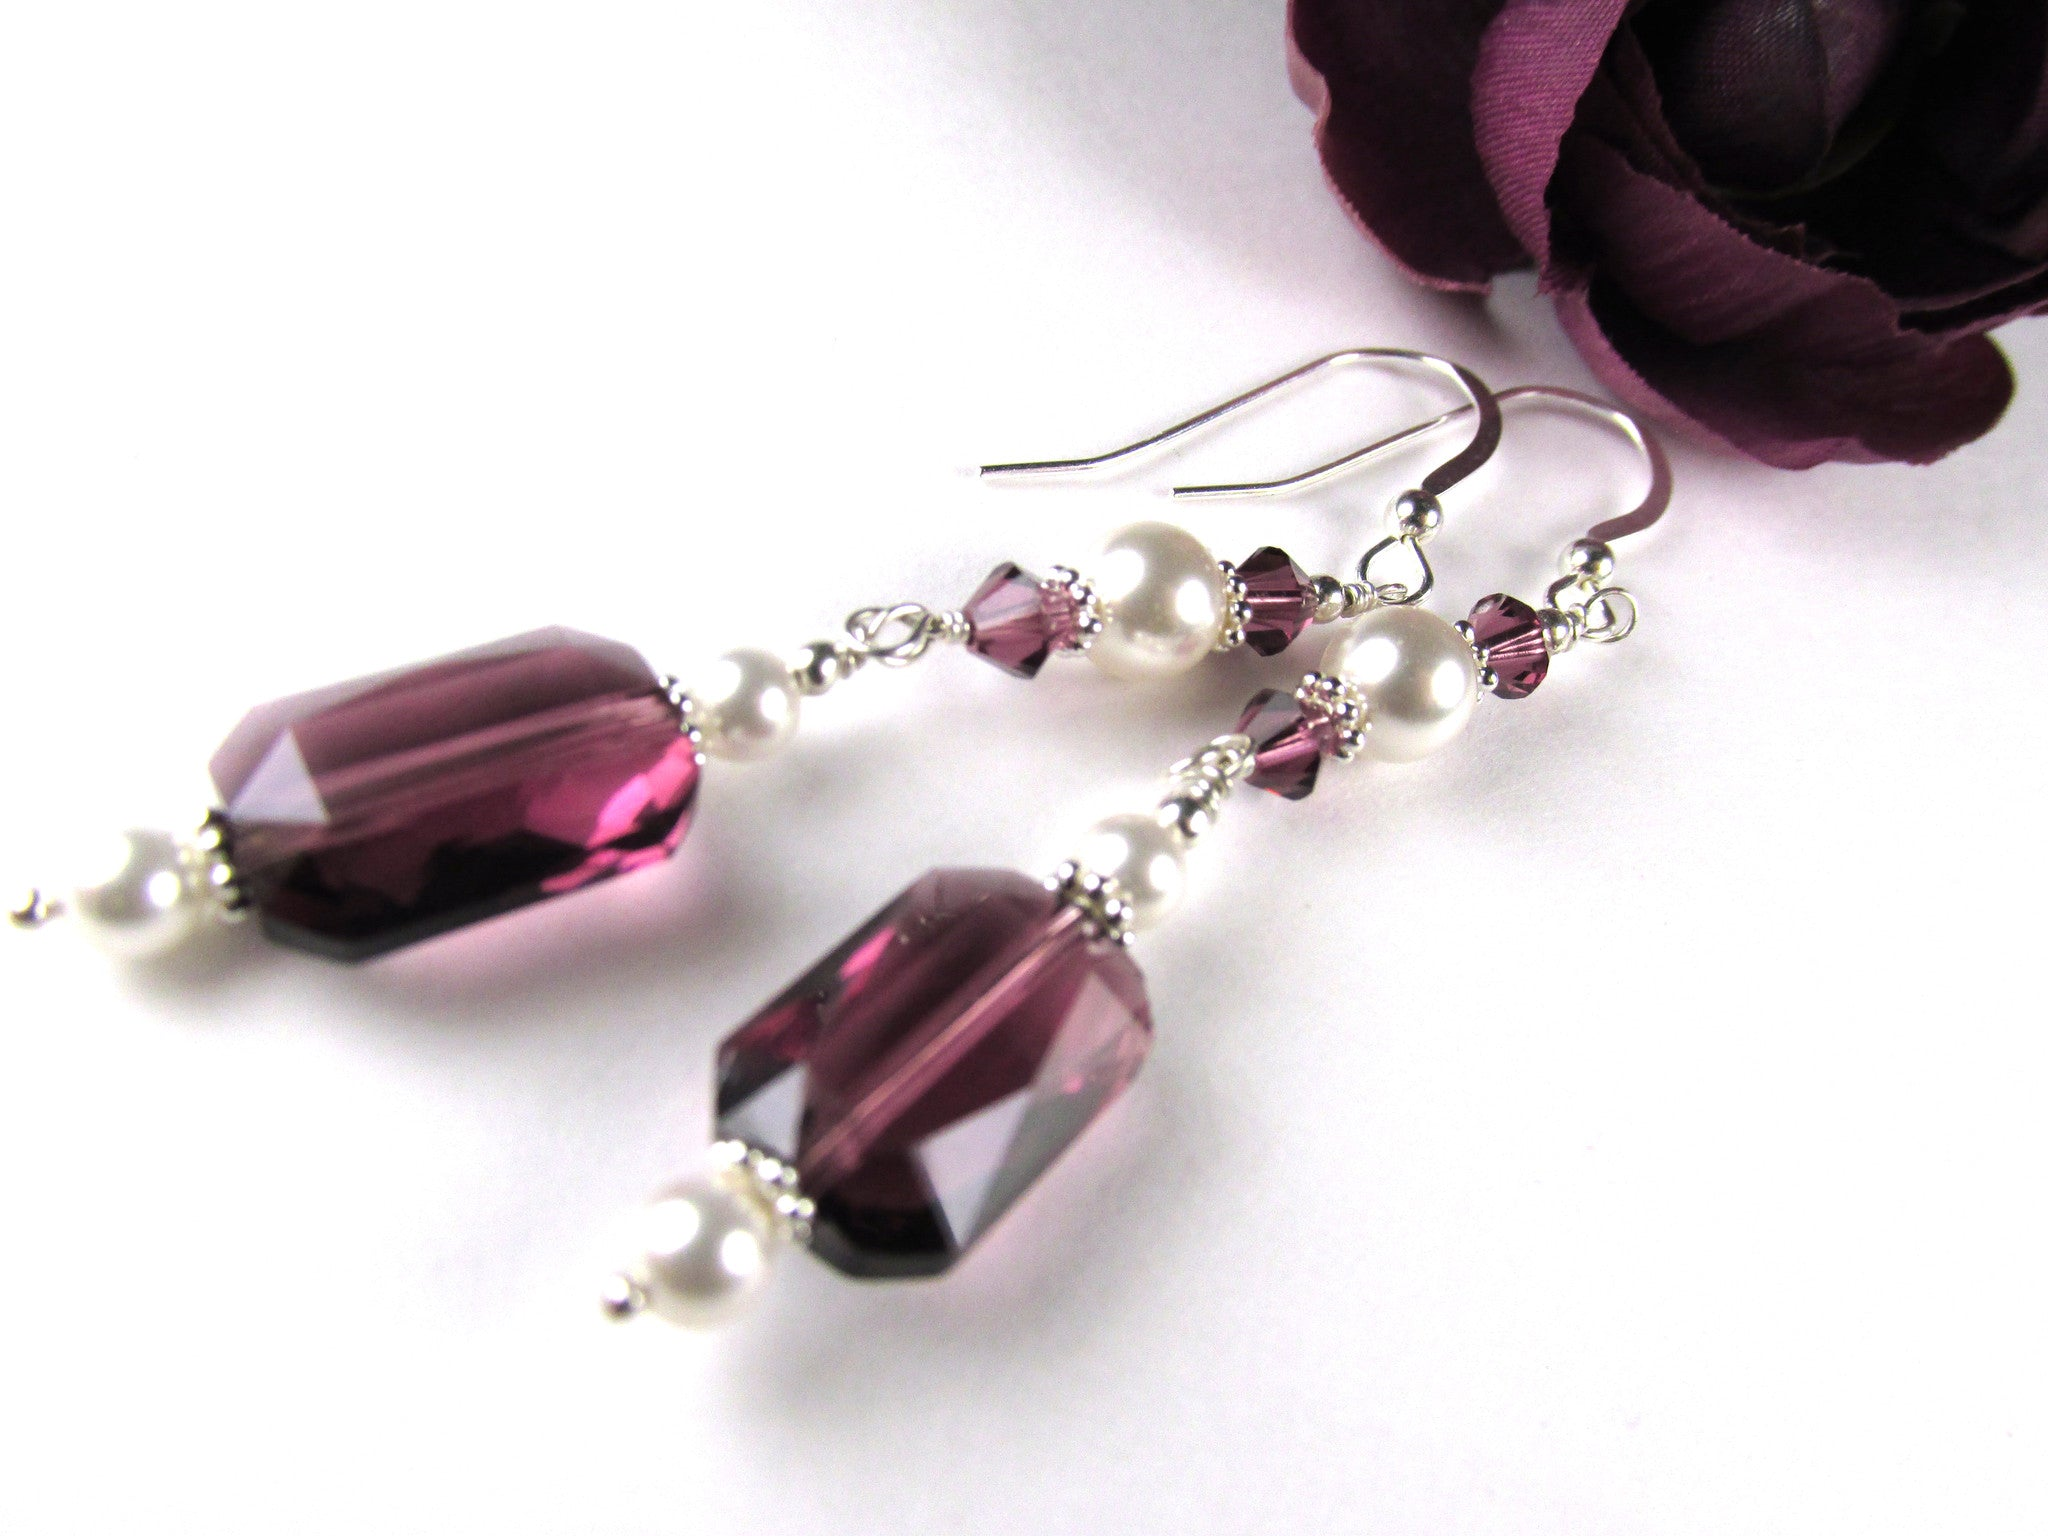 Swarovski Purple Amethyst Faceted Rectangles and White Pearl Sterling Silver Earrings - Odyssey Creations